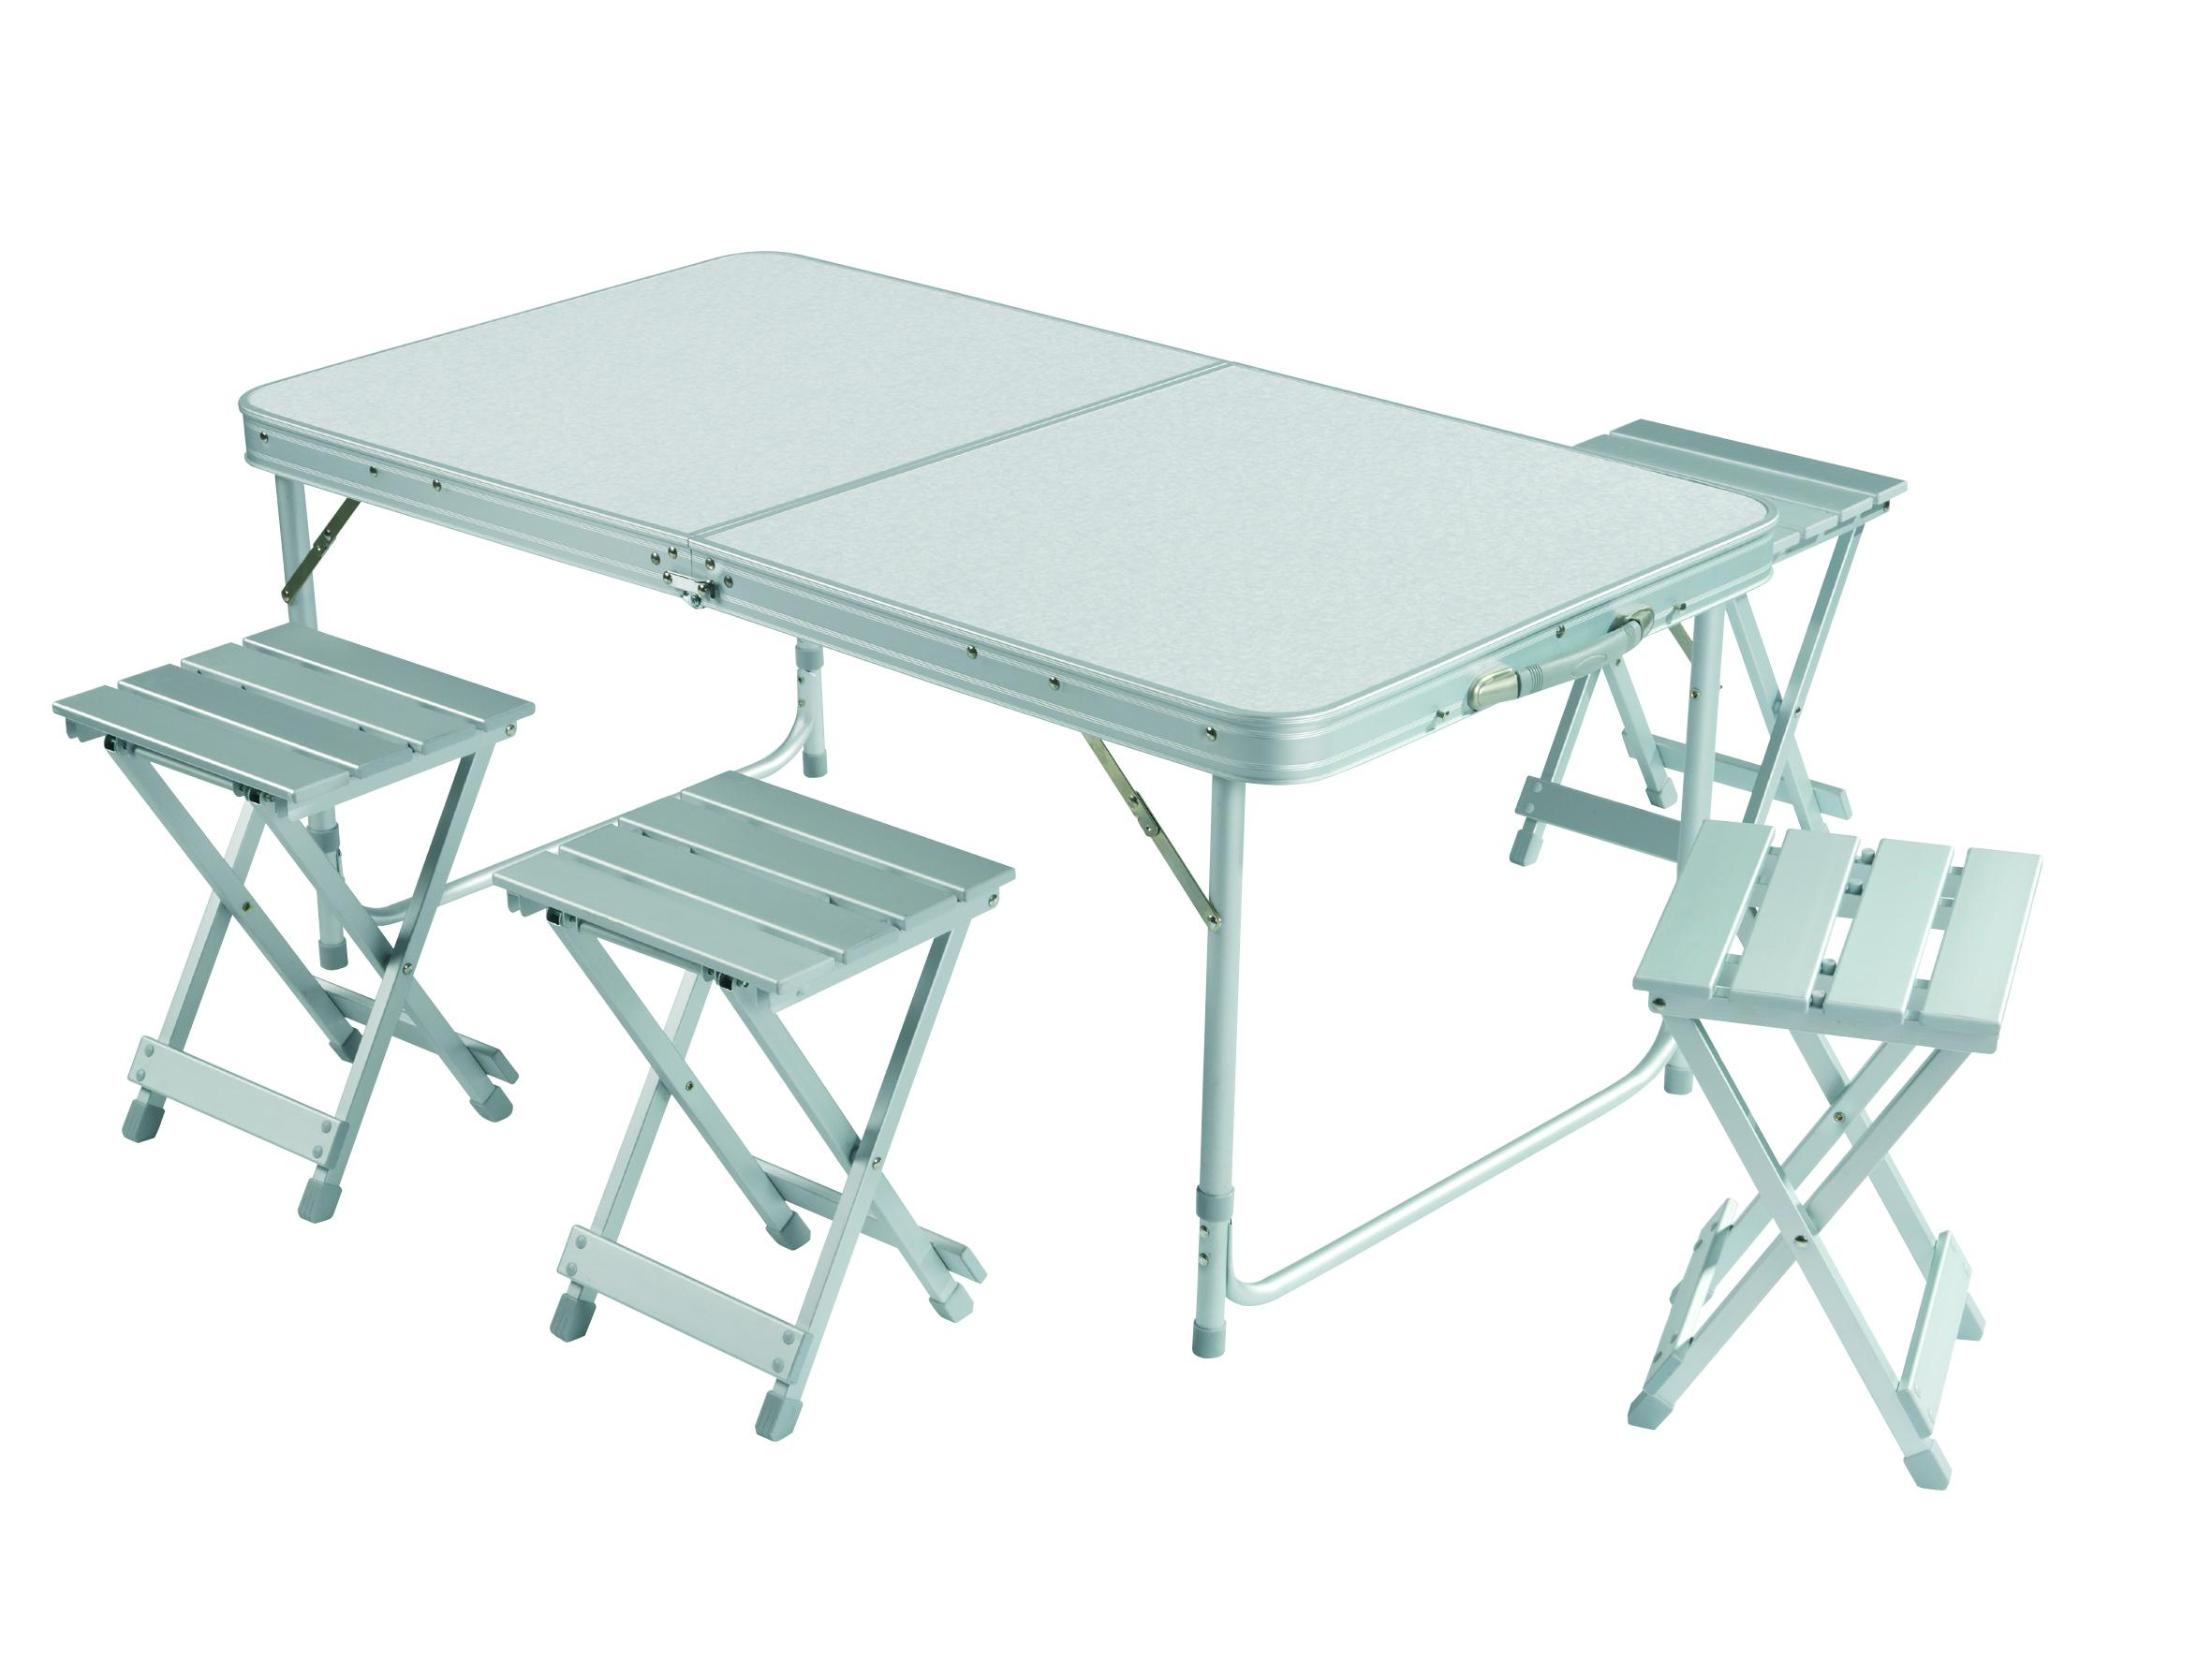 Grand Canyon Camping Table Set Foldable Portable Picnic Table With